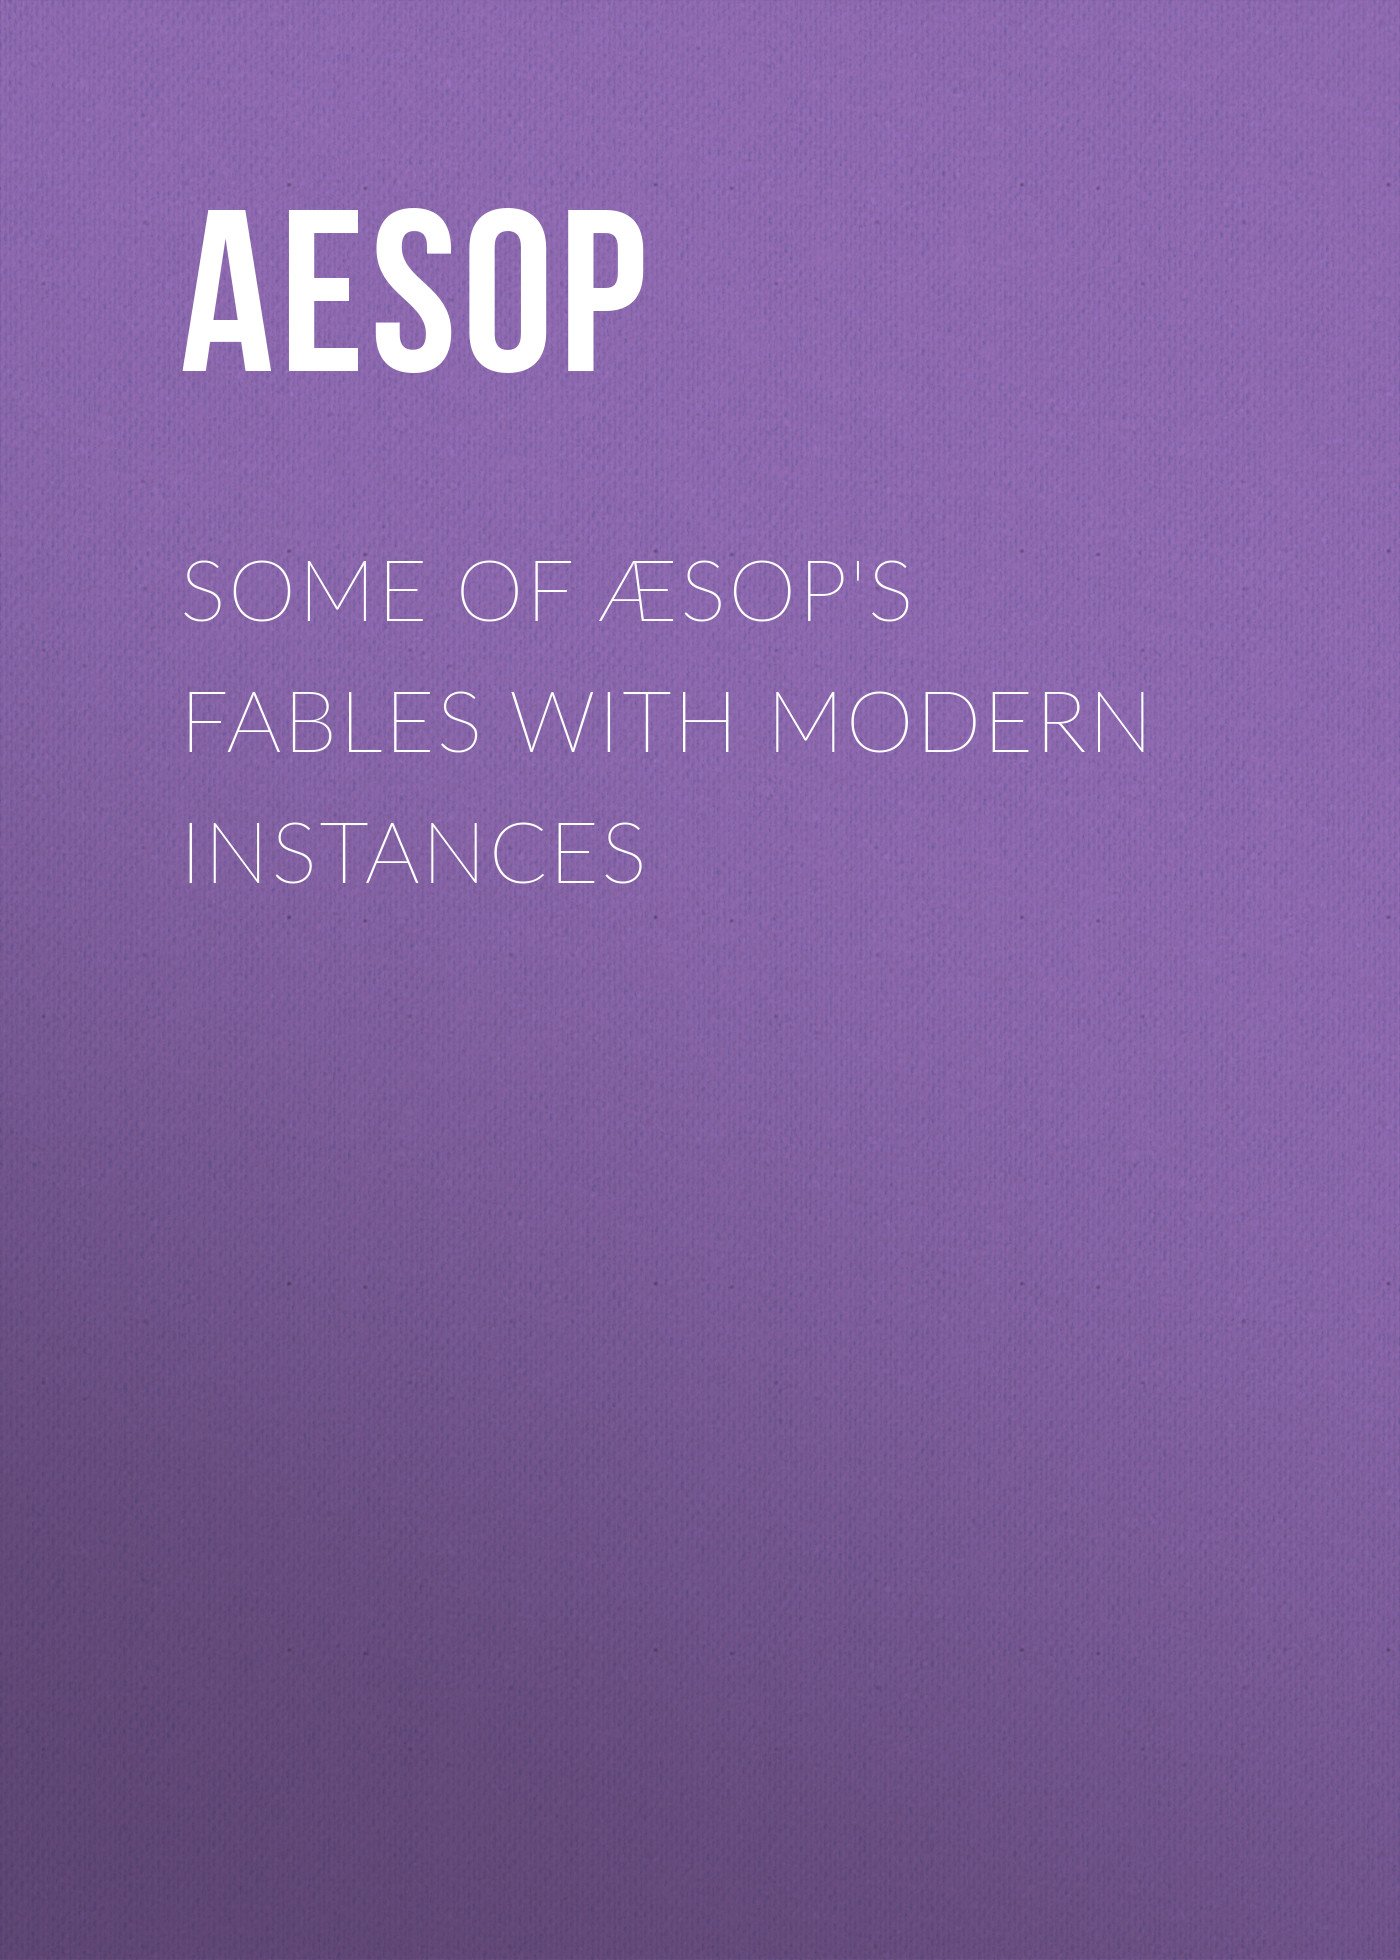 Aesop Some of Æsop's Fables with Modern Instances boxpop lb 081 35